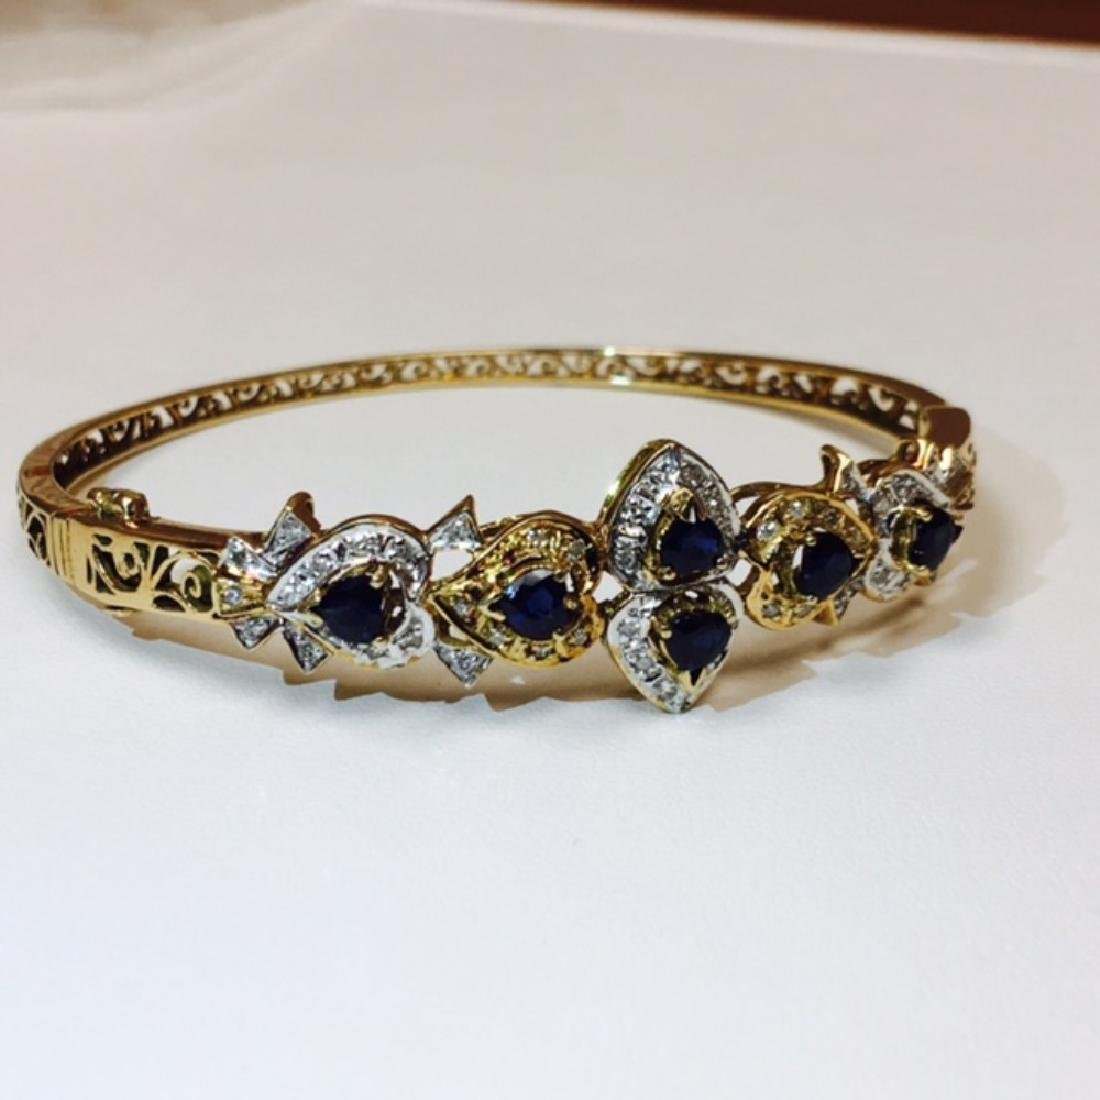 14k Gold Diamond & Blue Sapphire Bracelet / BANGLE - 2